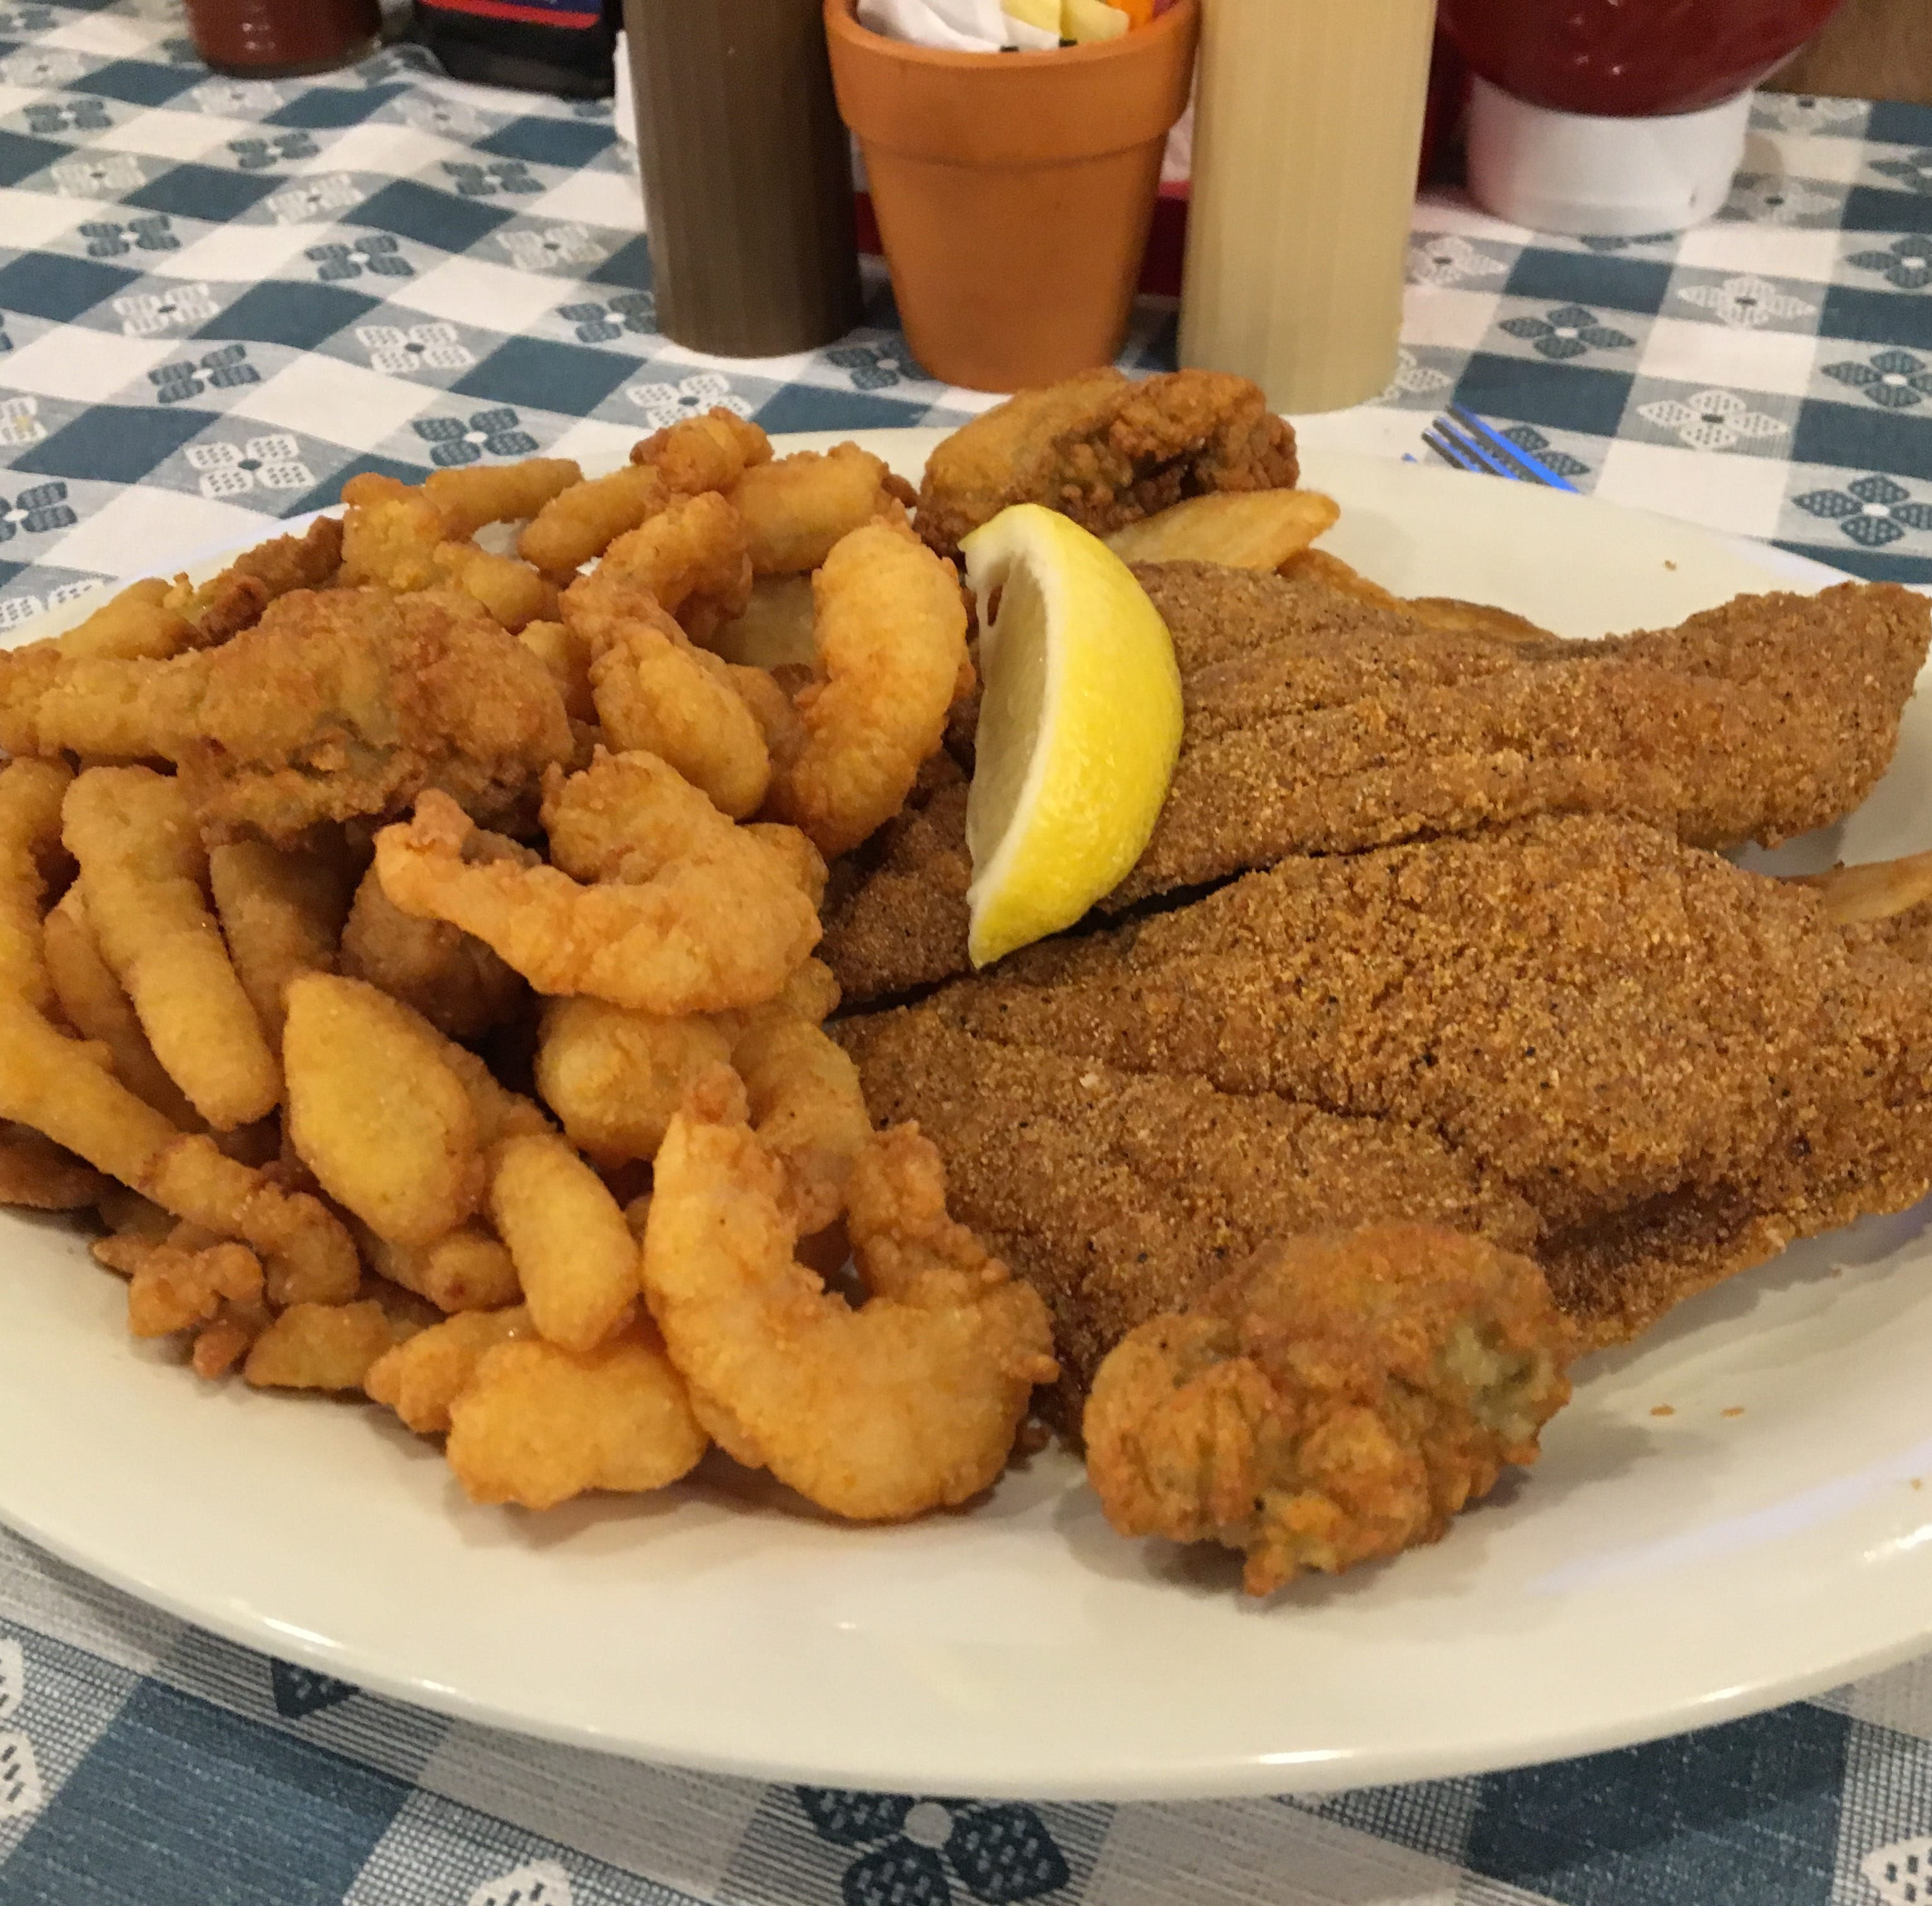 All-you-can-eat chicken, fish, sides on the menu at Uncle Bud's